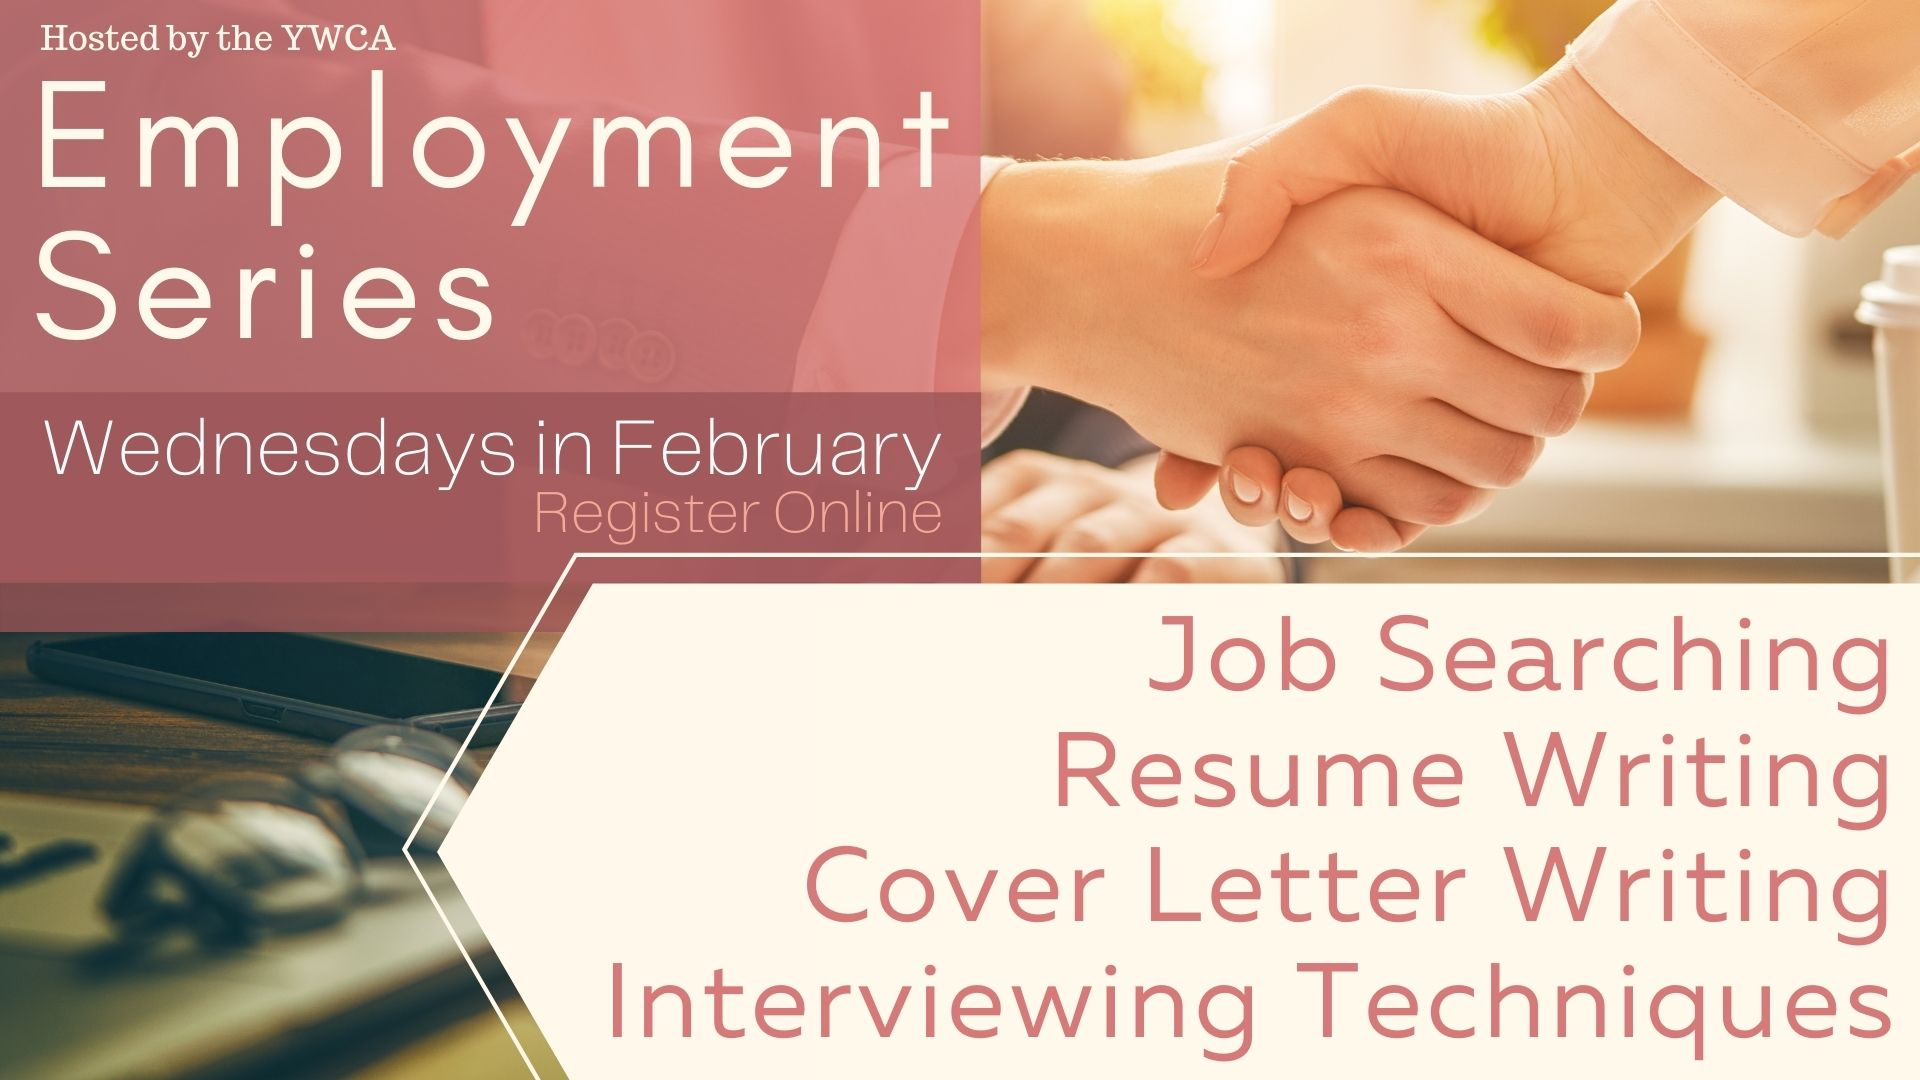 YWCA Employment Series: Interview Techniques